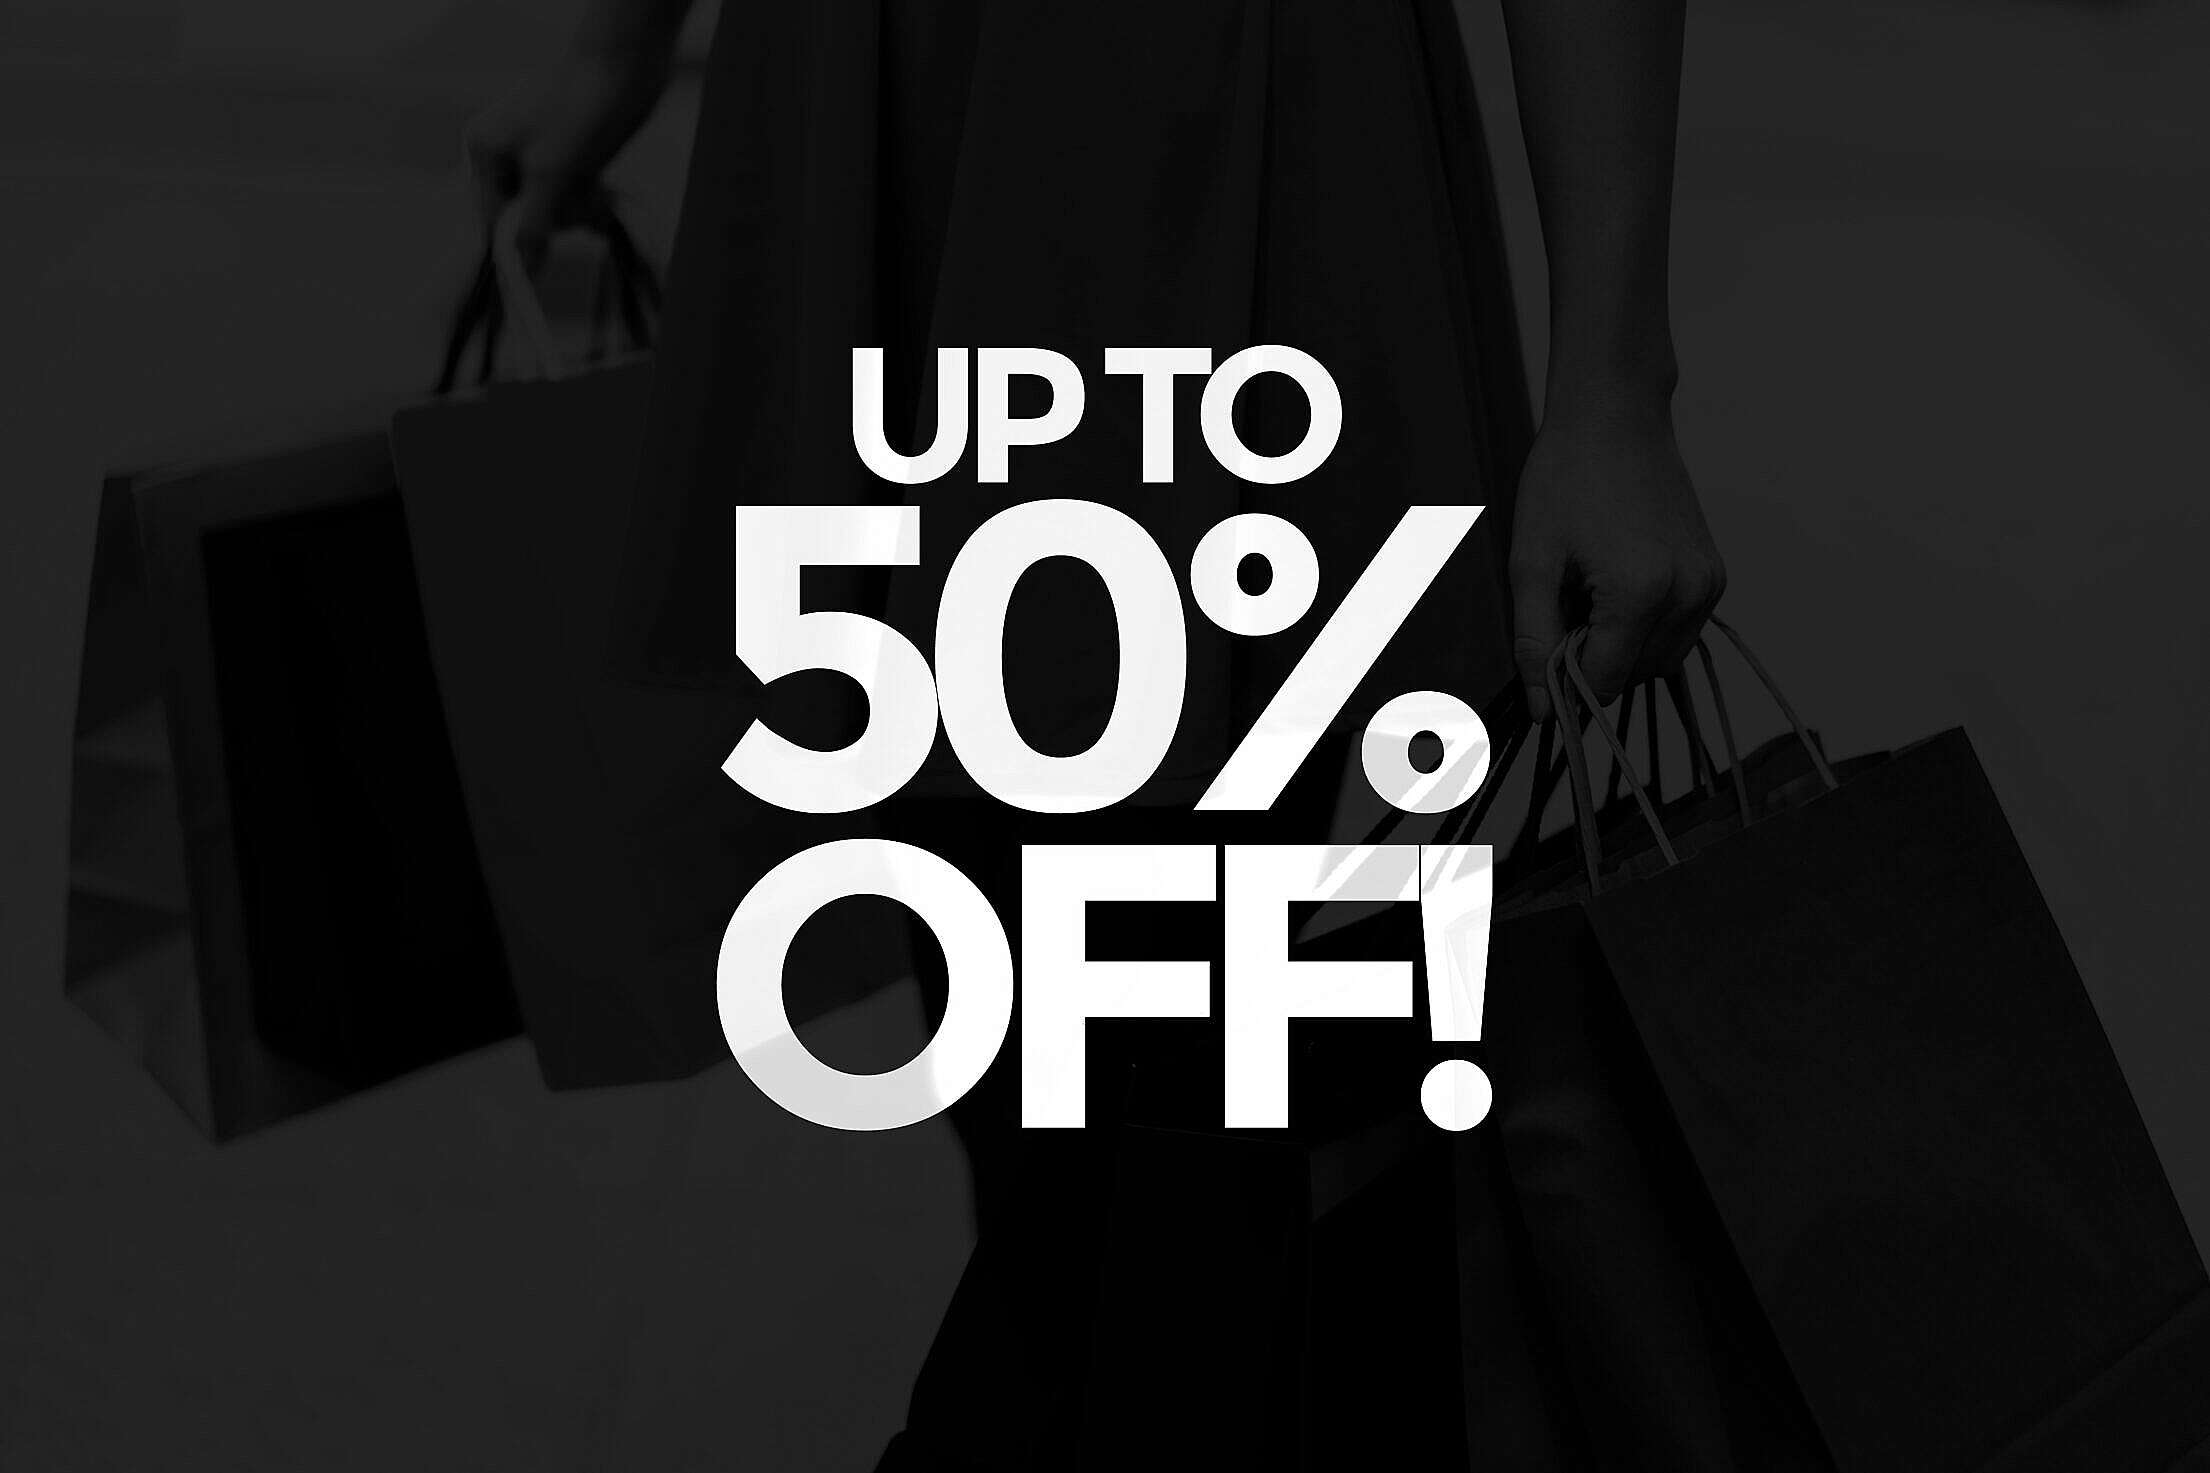 UP TO 50% OFF Sale Visual Free Stock Photo